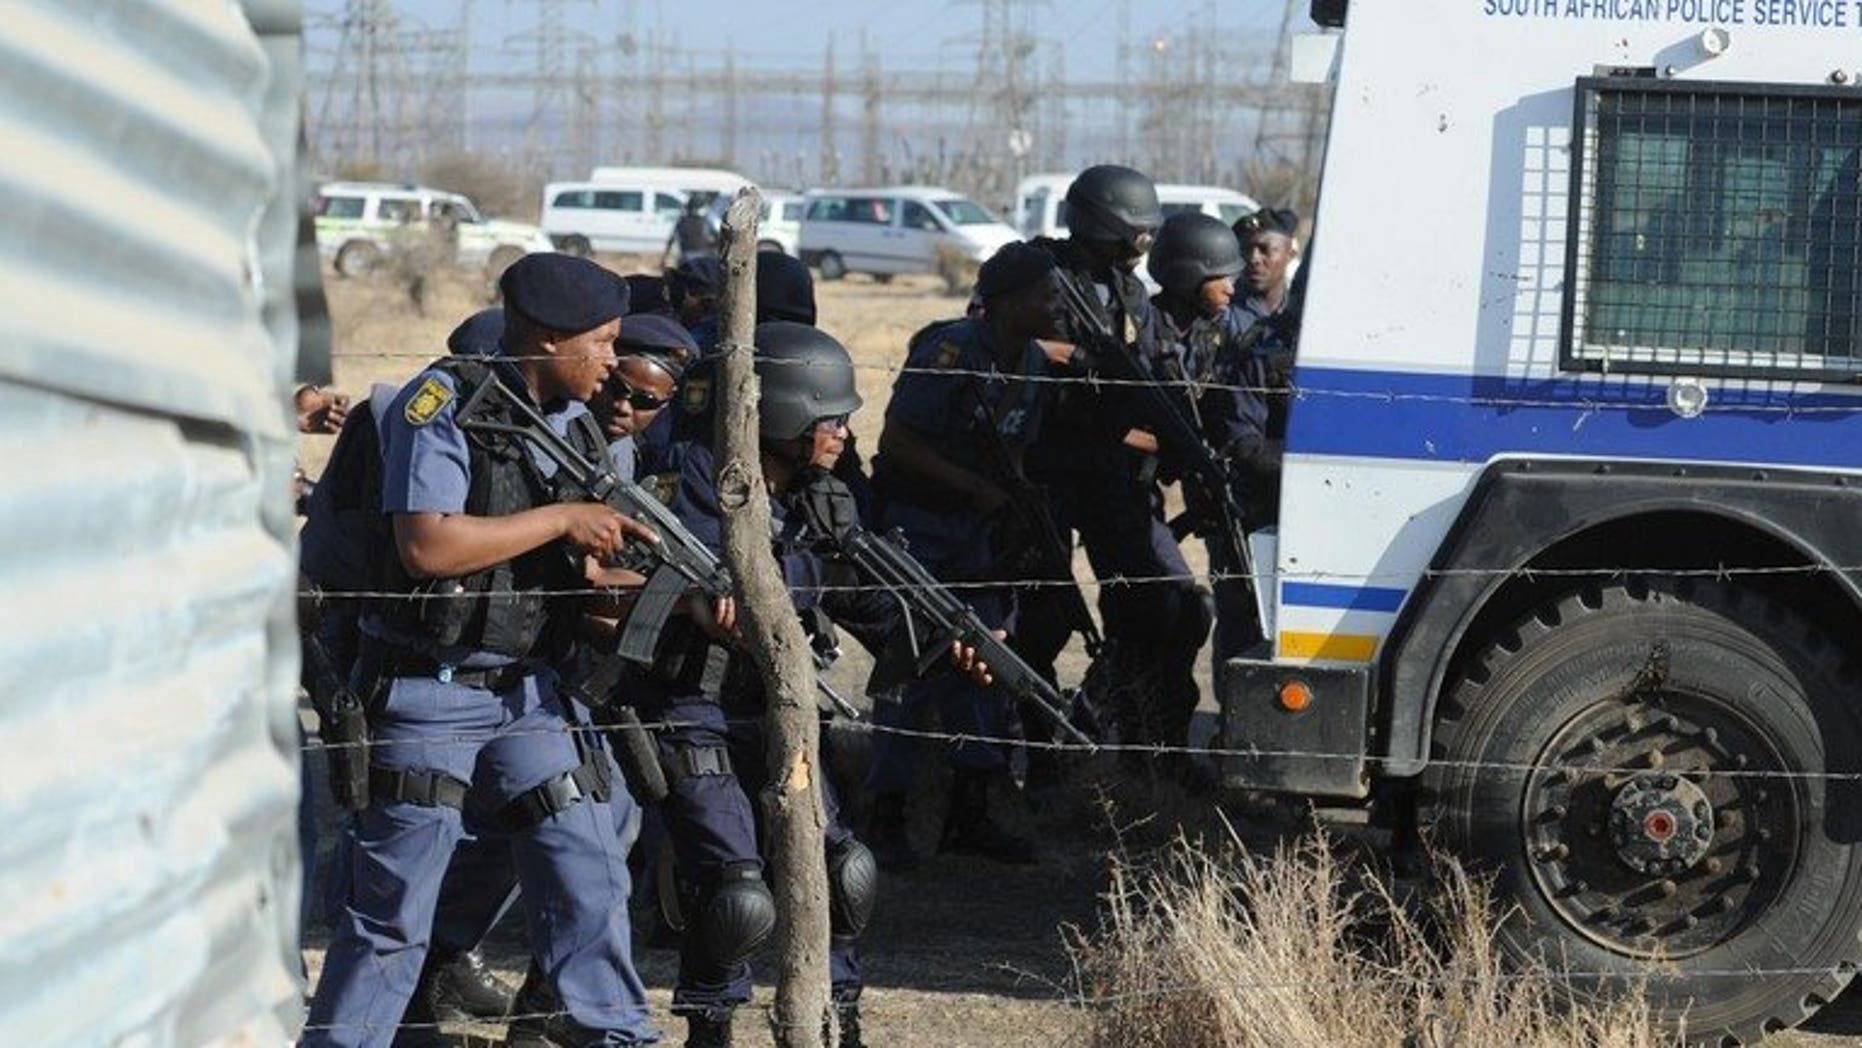 Police officers look at protesting miners near a platinum mine in Marikana on August 16, 2012. South Africa's Marikana commission adjourned Friday with major questions remaining about how police came to shoot dead 34 miners and amid growing concerns about the inquest itself.